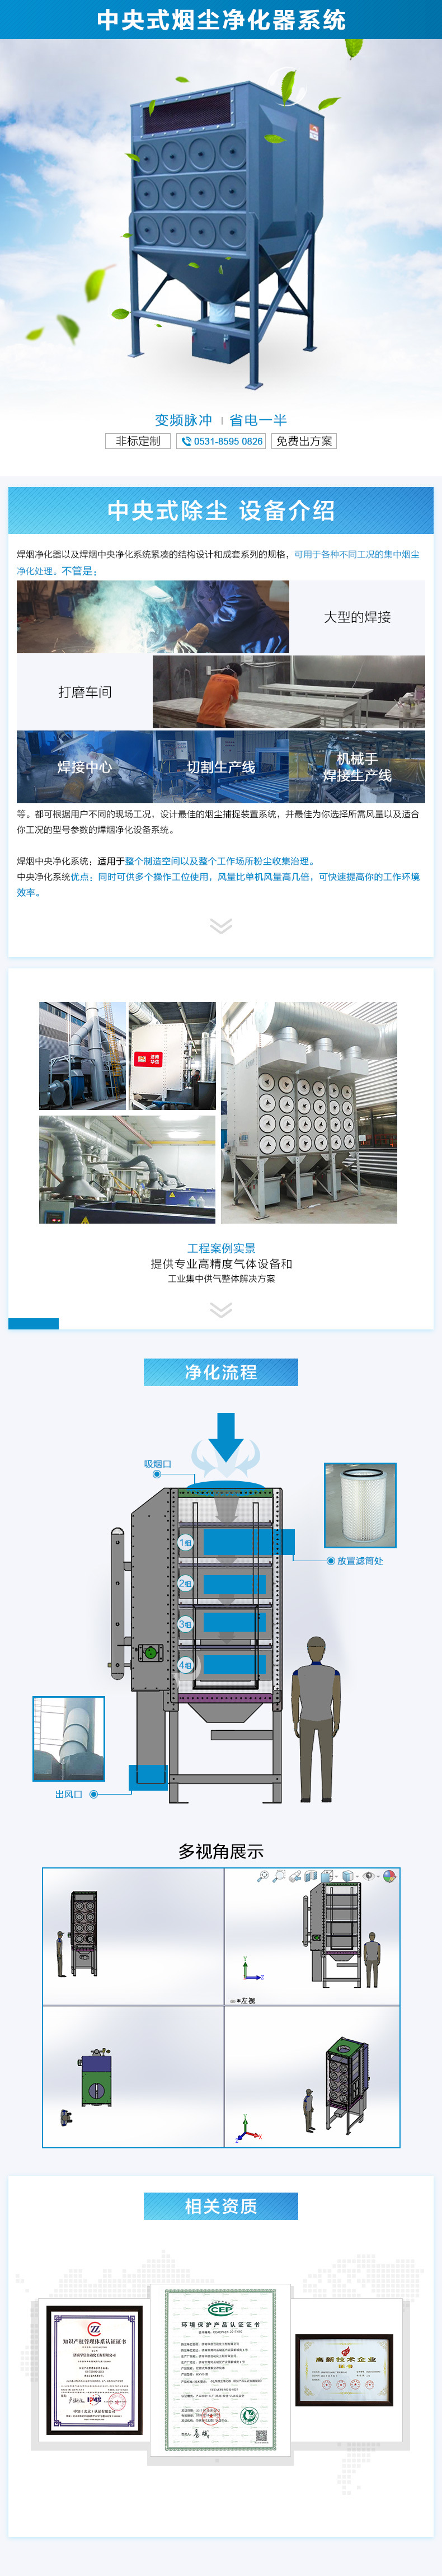 Split Type Central Fume Extractor Machine in Shandong